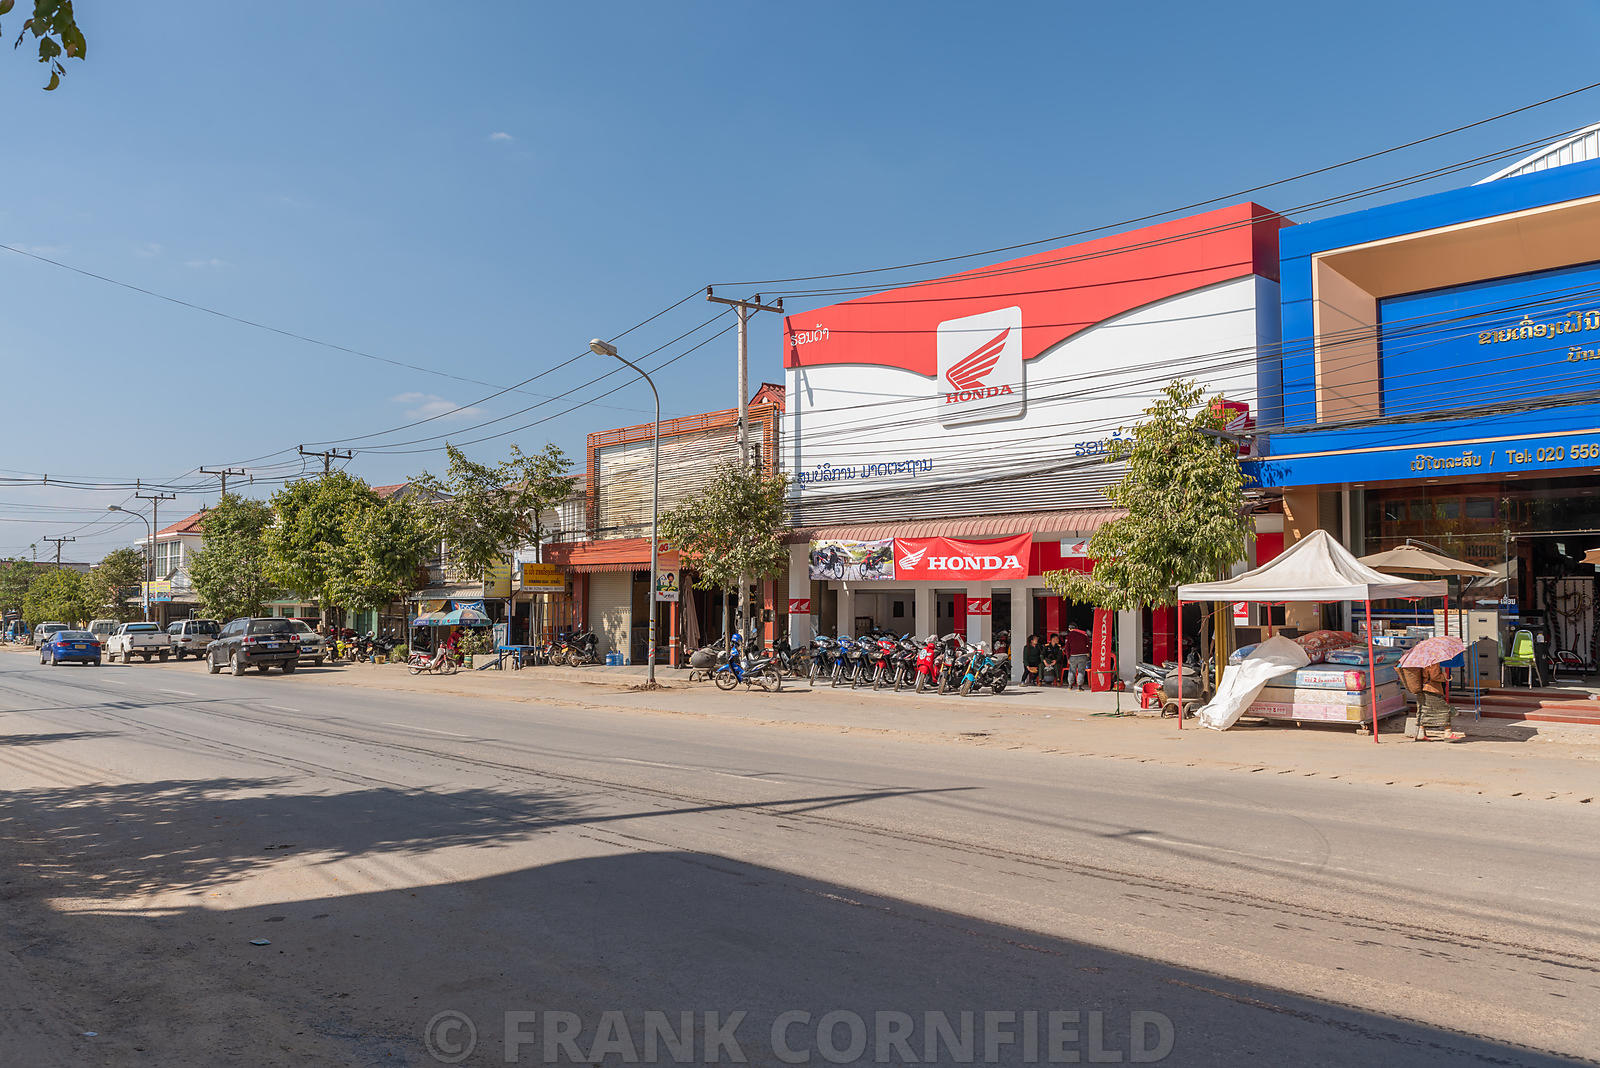 PHONSOVAN, LAOS - JANUARY 28, 2019:  The main street in the commercial and retail area of Phonsovan in Laos.